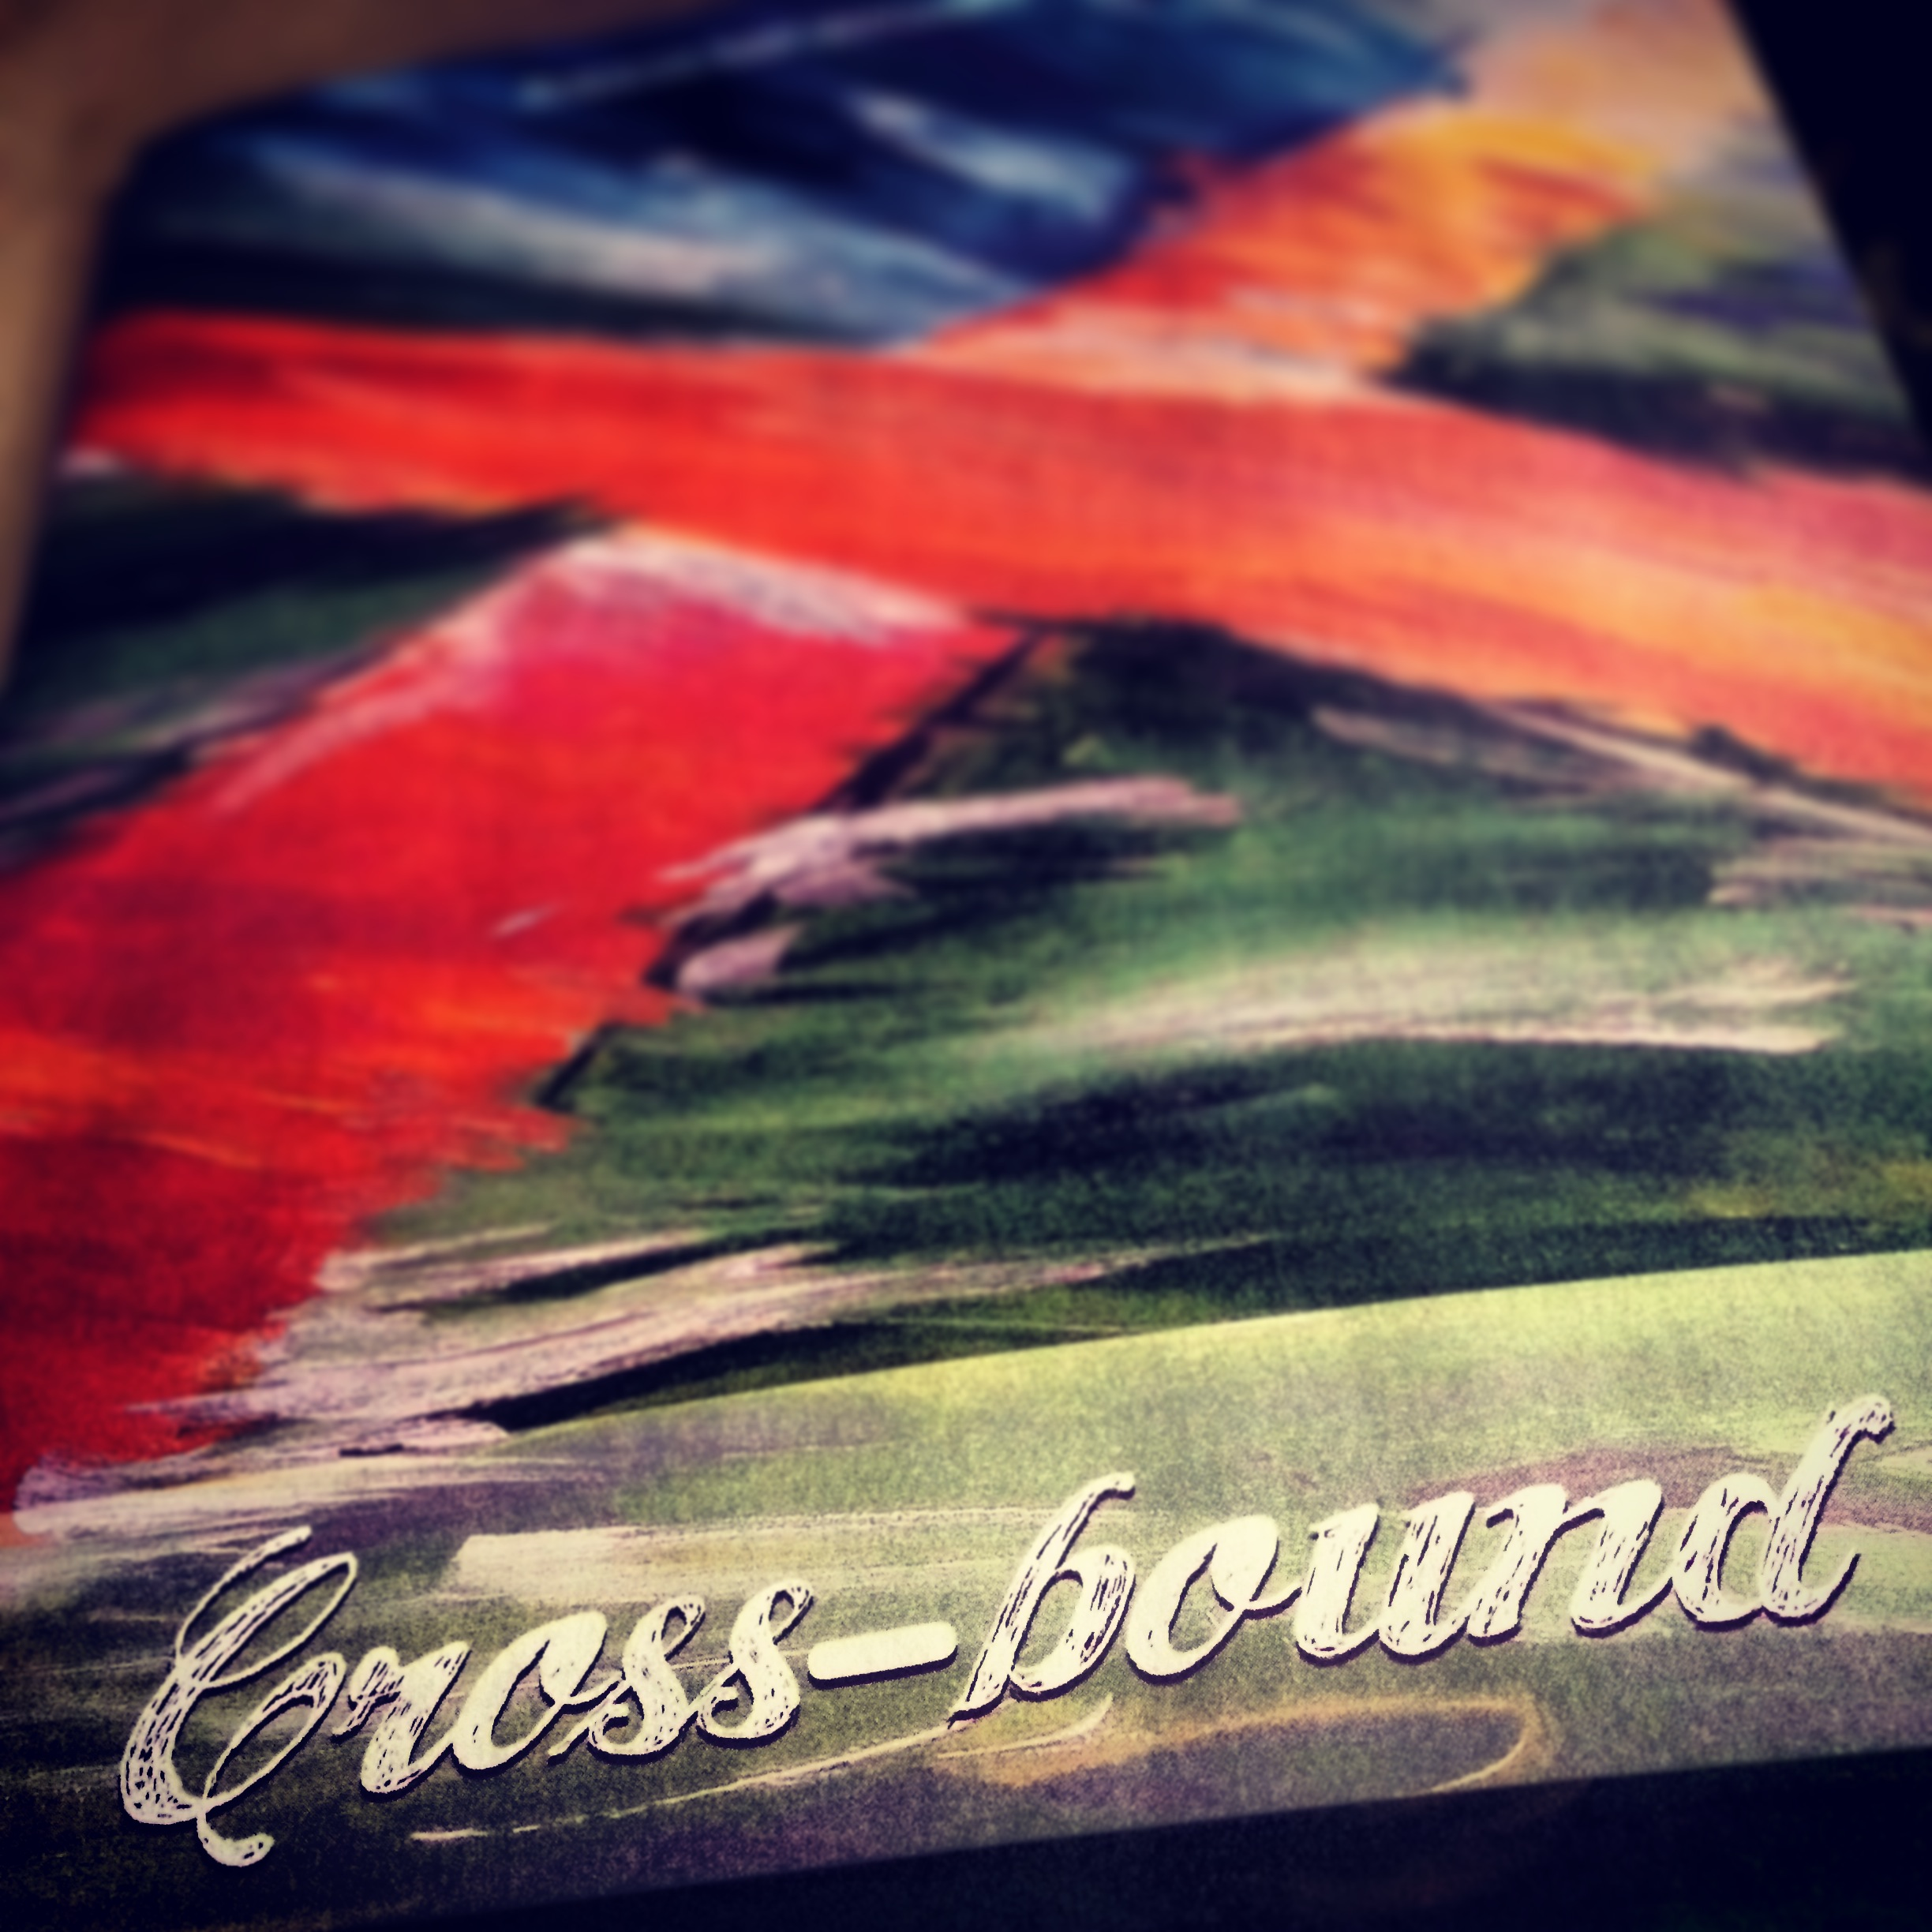 Cross-bound